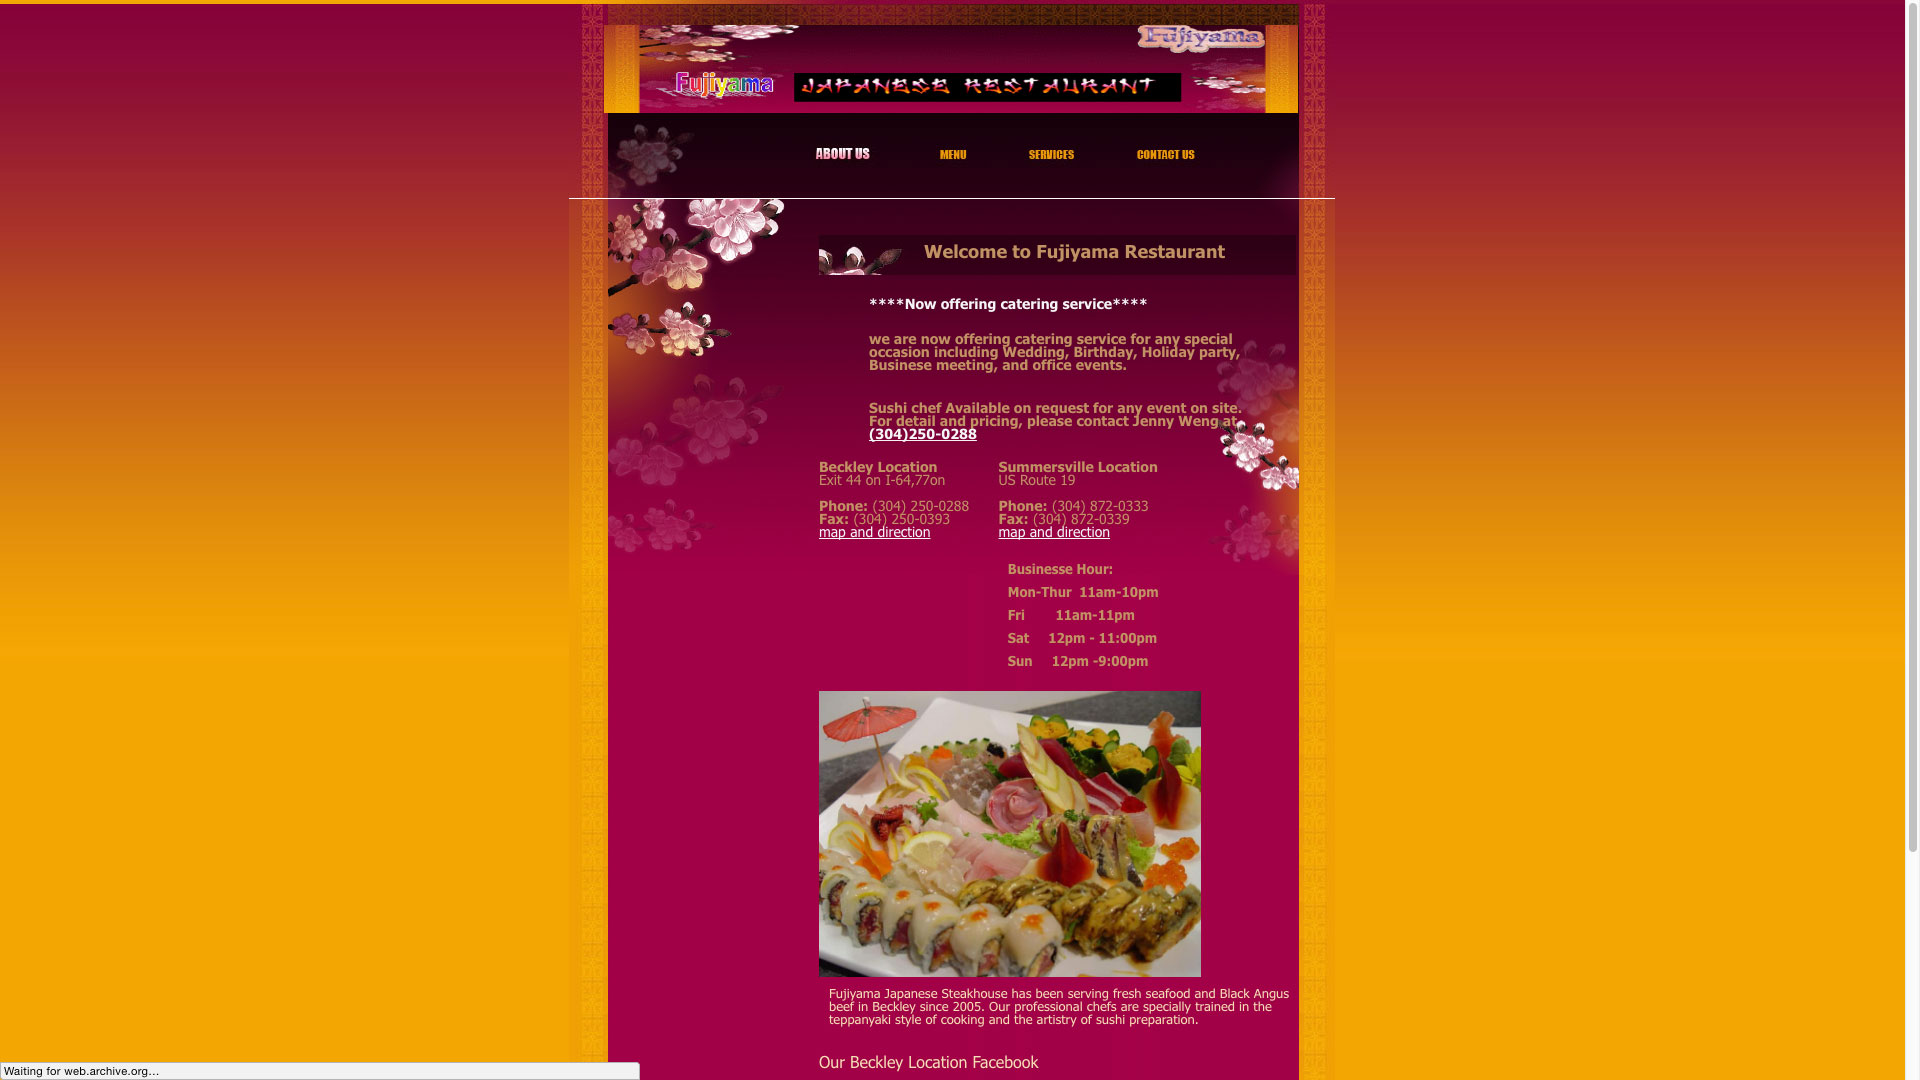 Fujiyama Japanese Restaurant About Us Page Website before using Cucumber & Co WV Web Design Beckley Princeton Bluefield Website Production